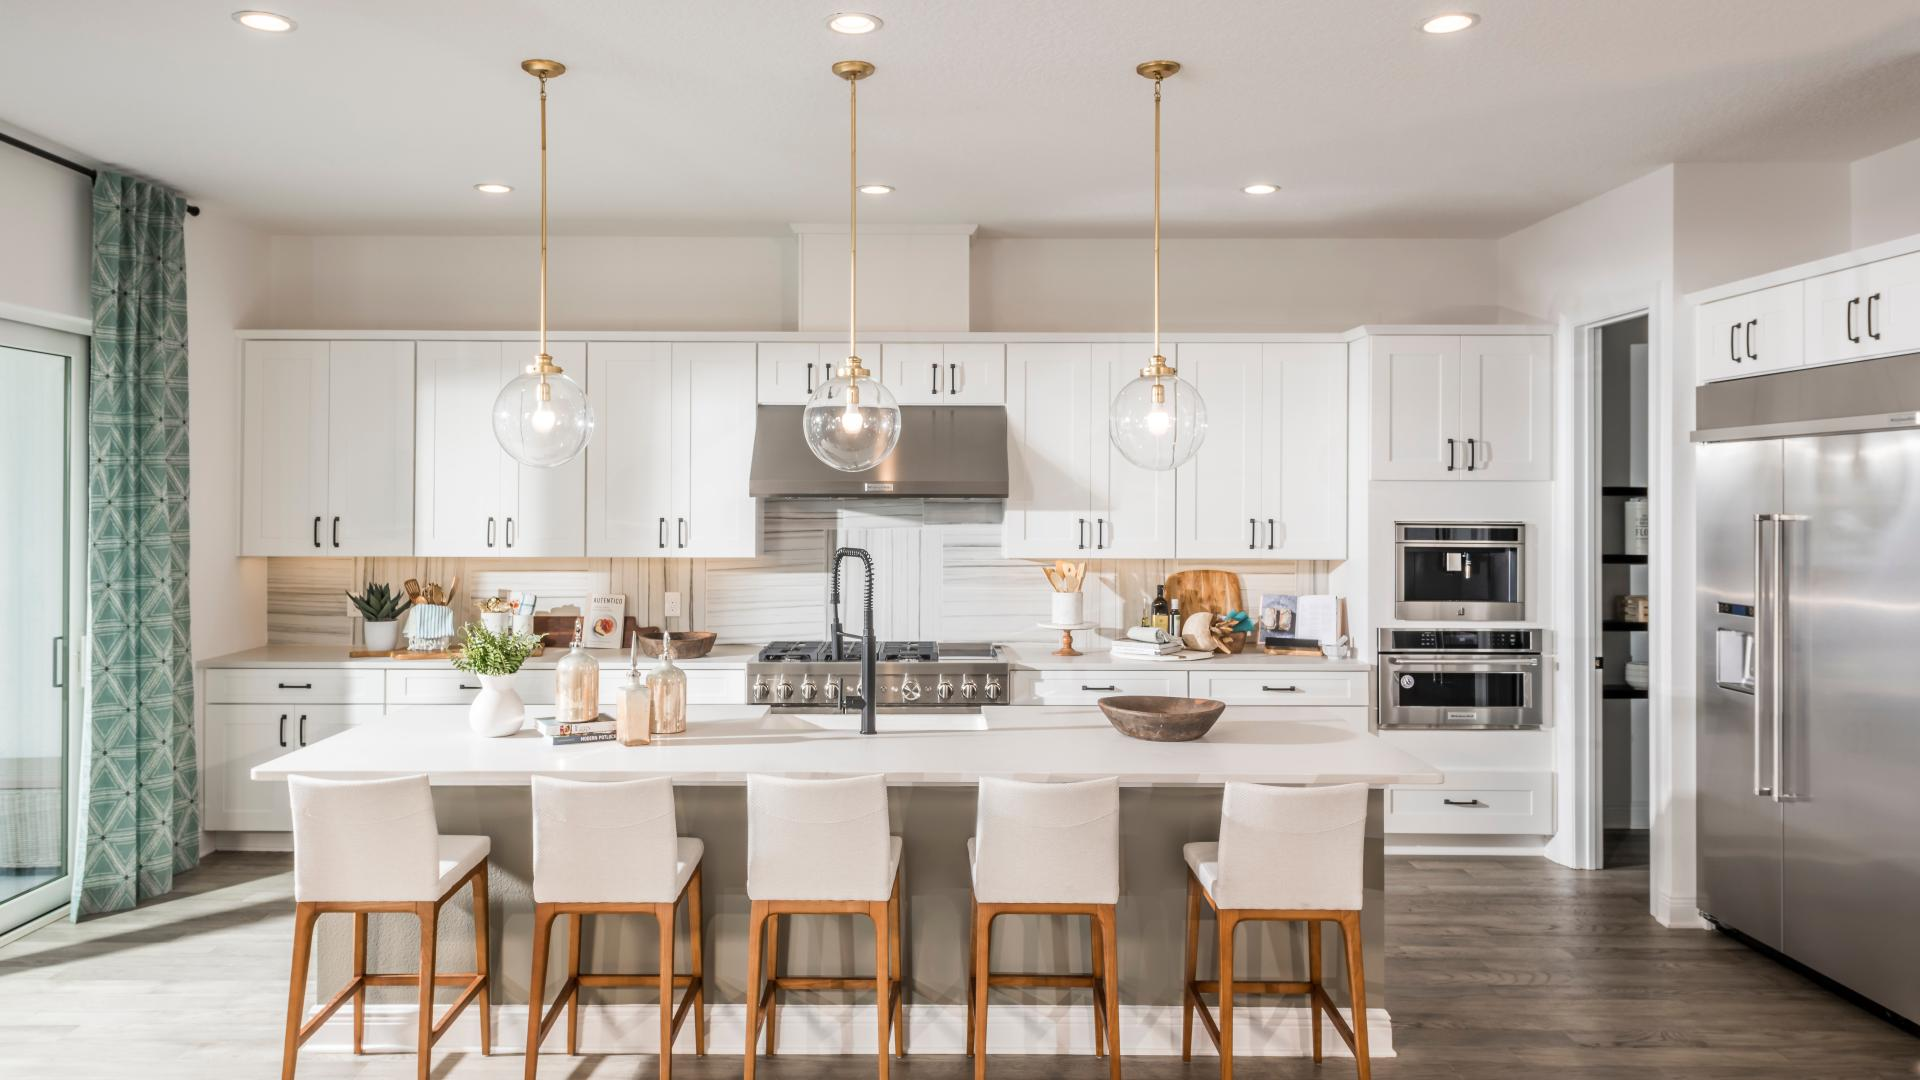 Gourmet kitchen with extra counter space for entertaining